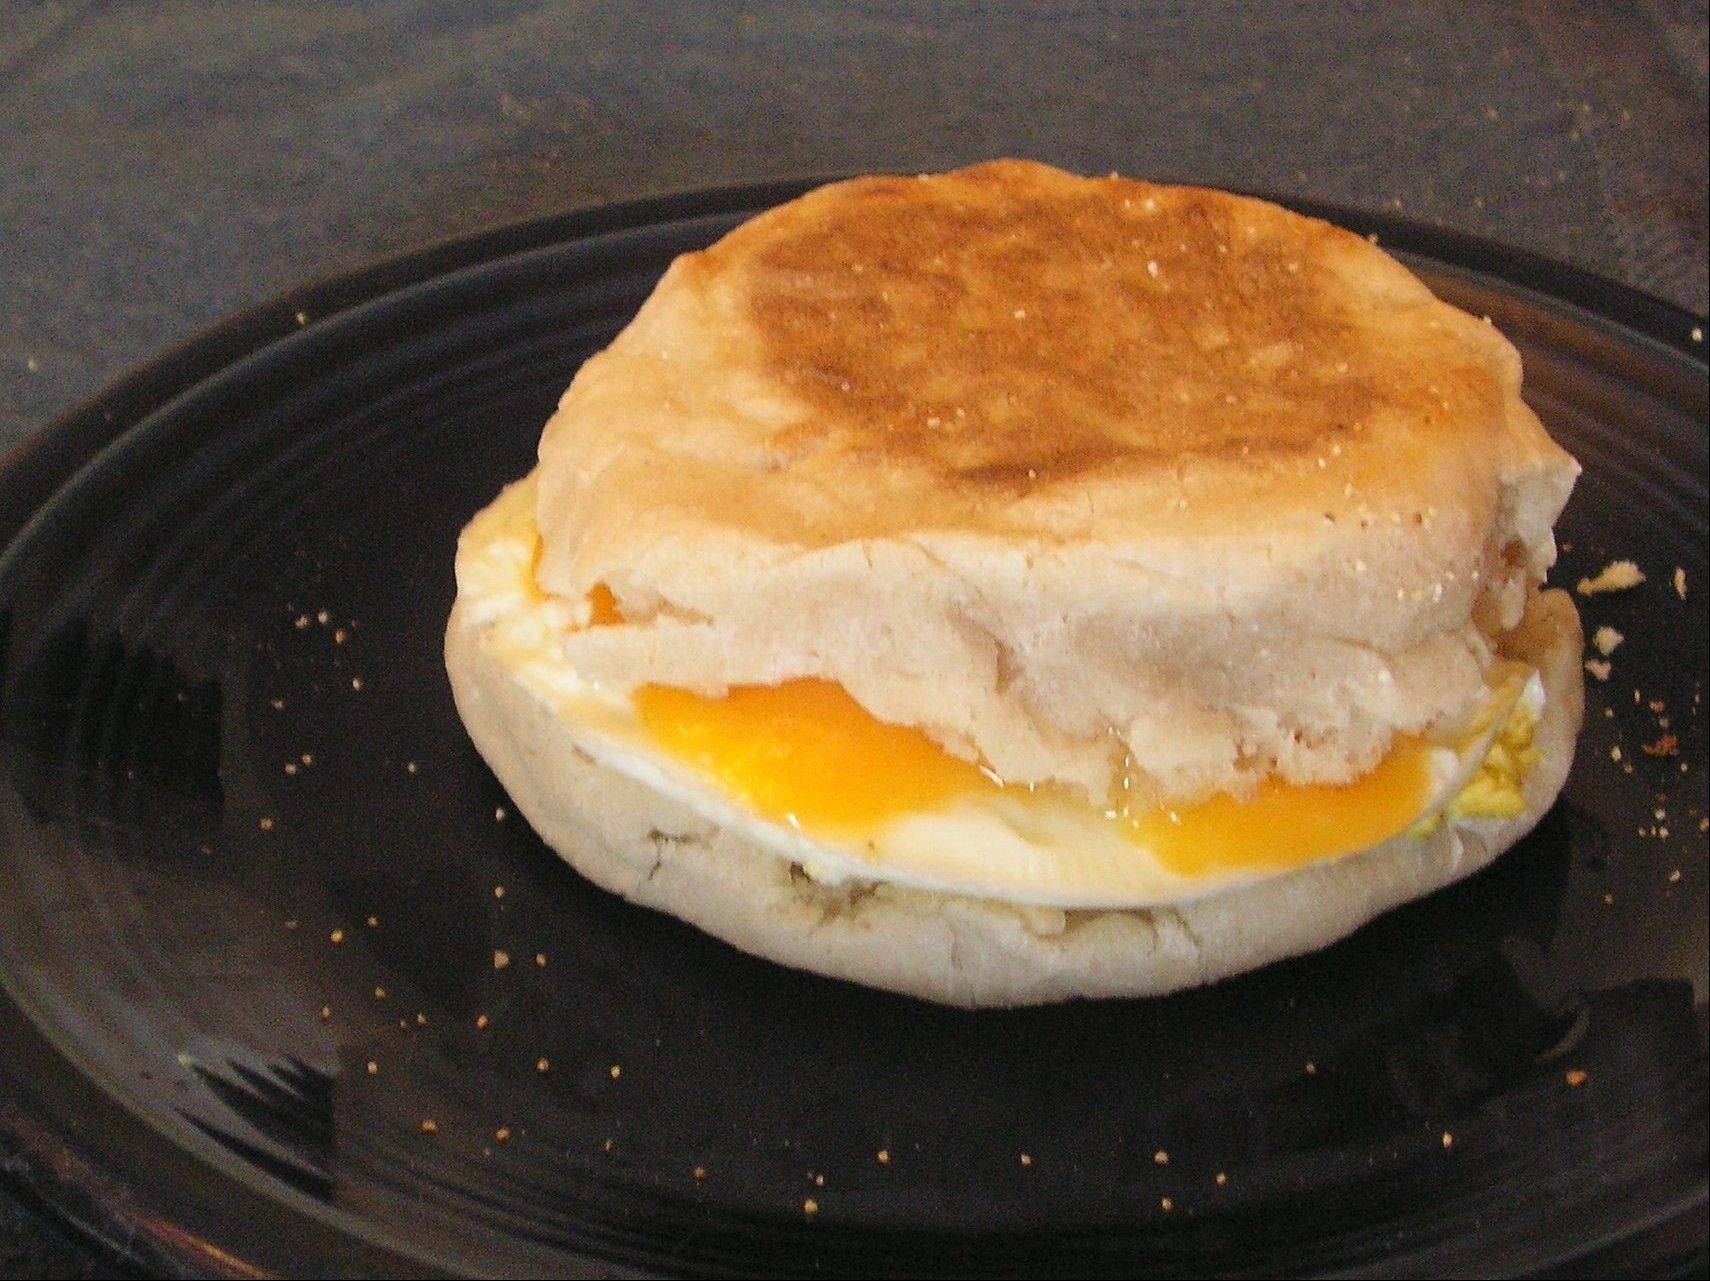 An Egg McMuffin after midnight? What's the world coming to?